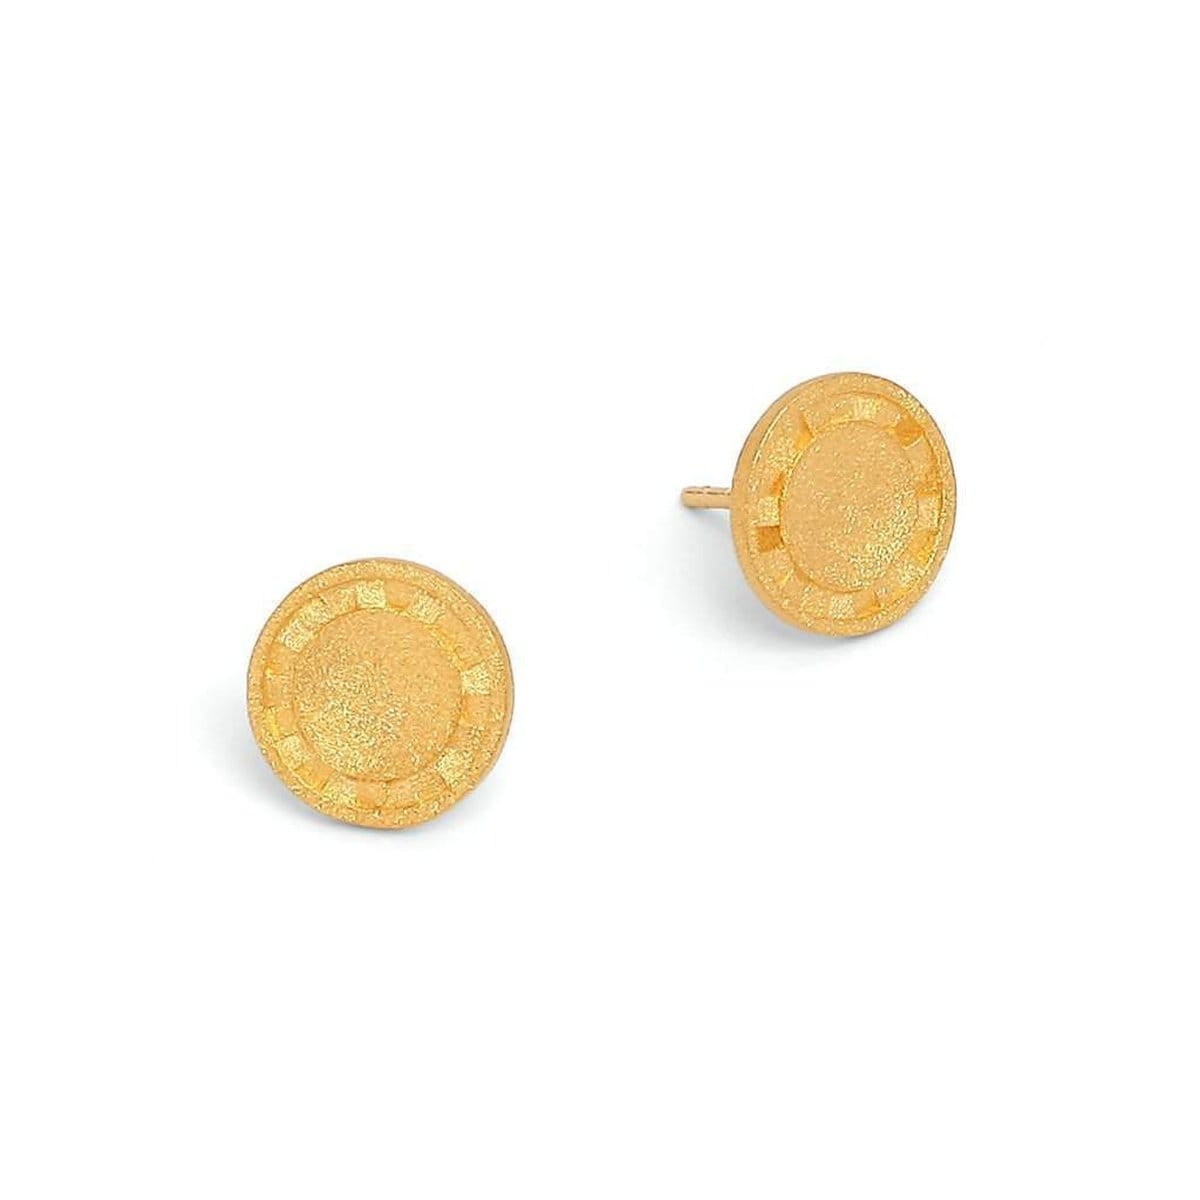 Konimi Earrings - 19152506